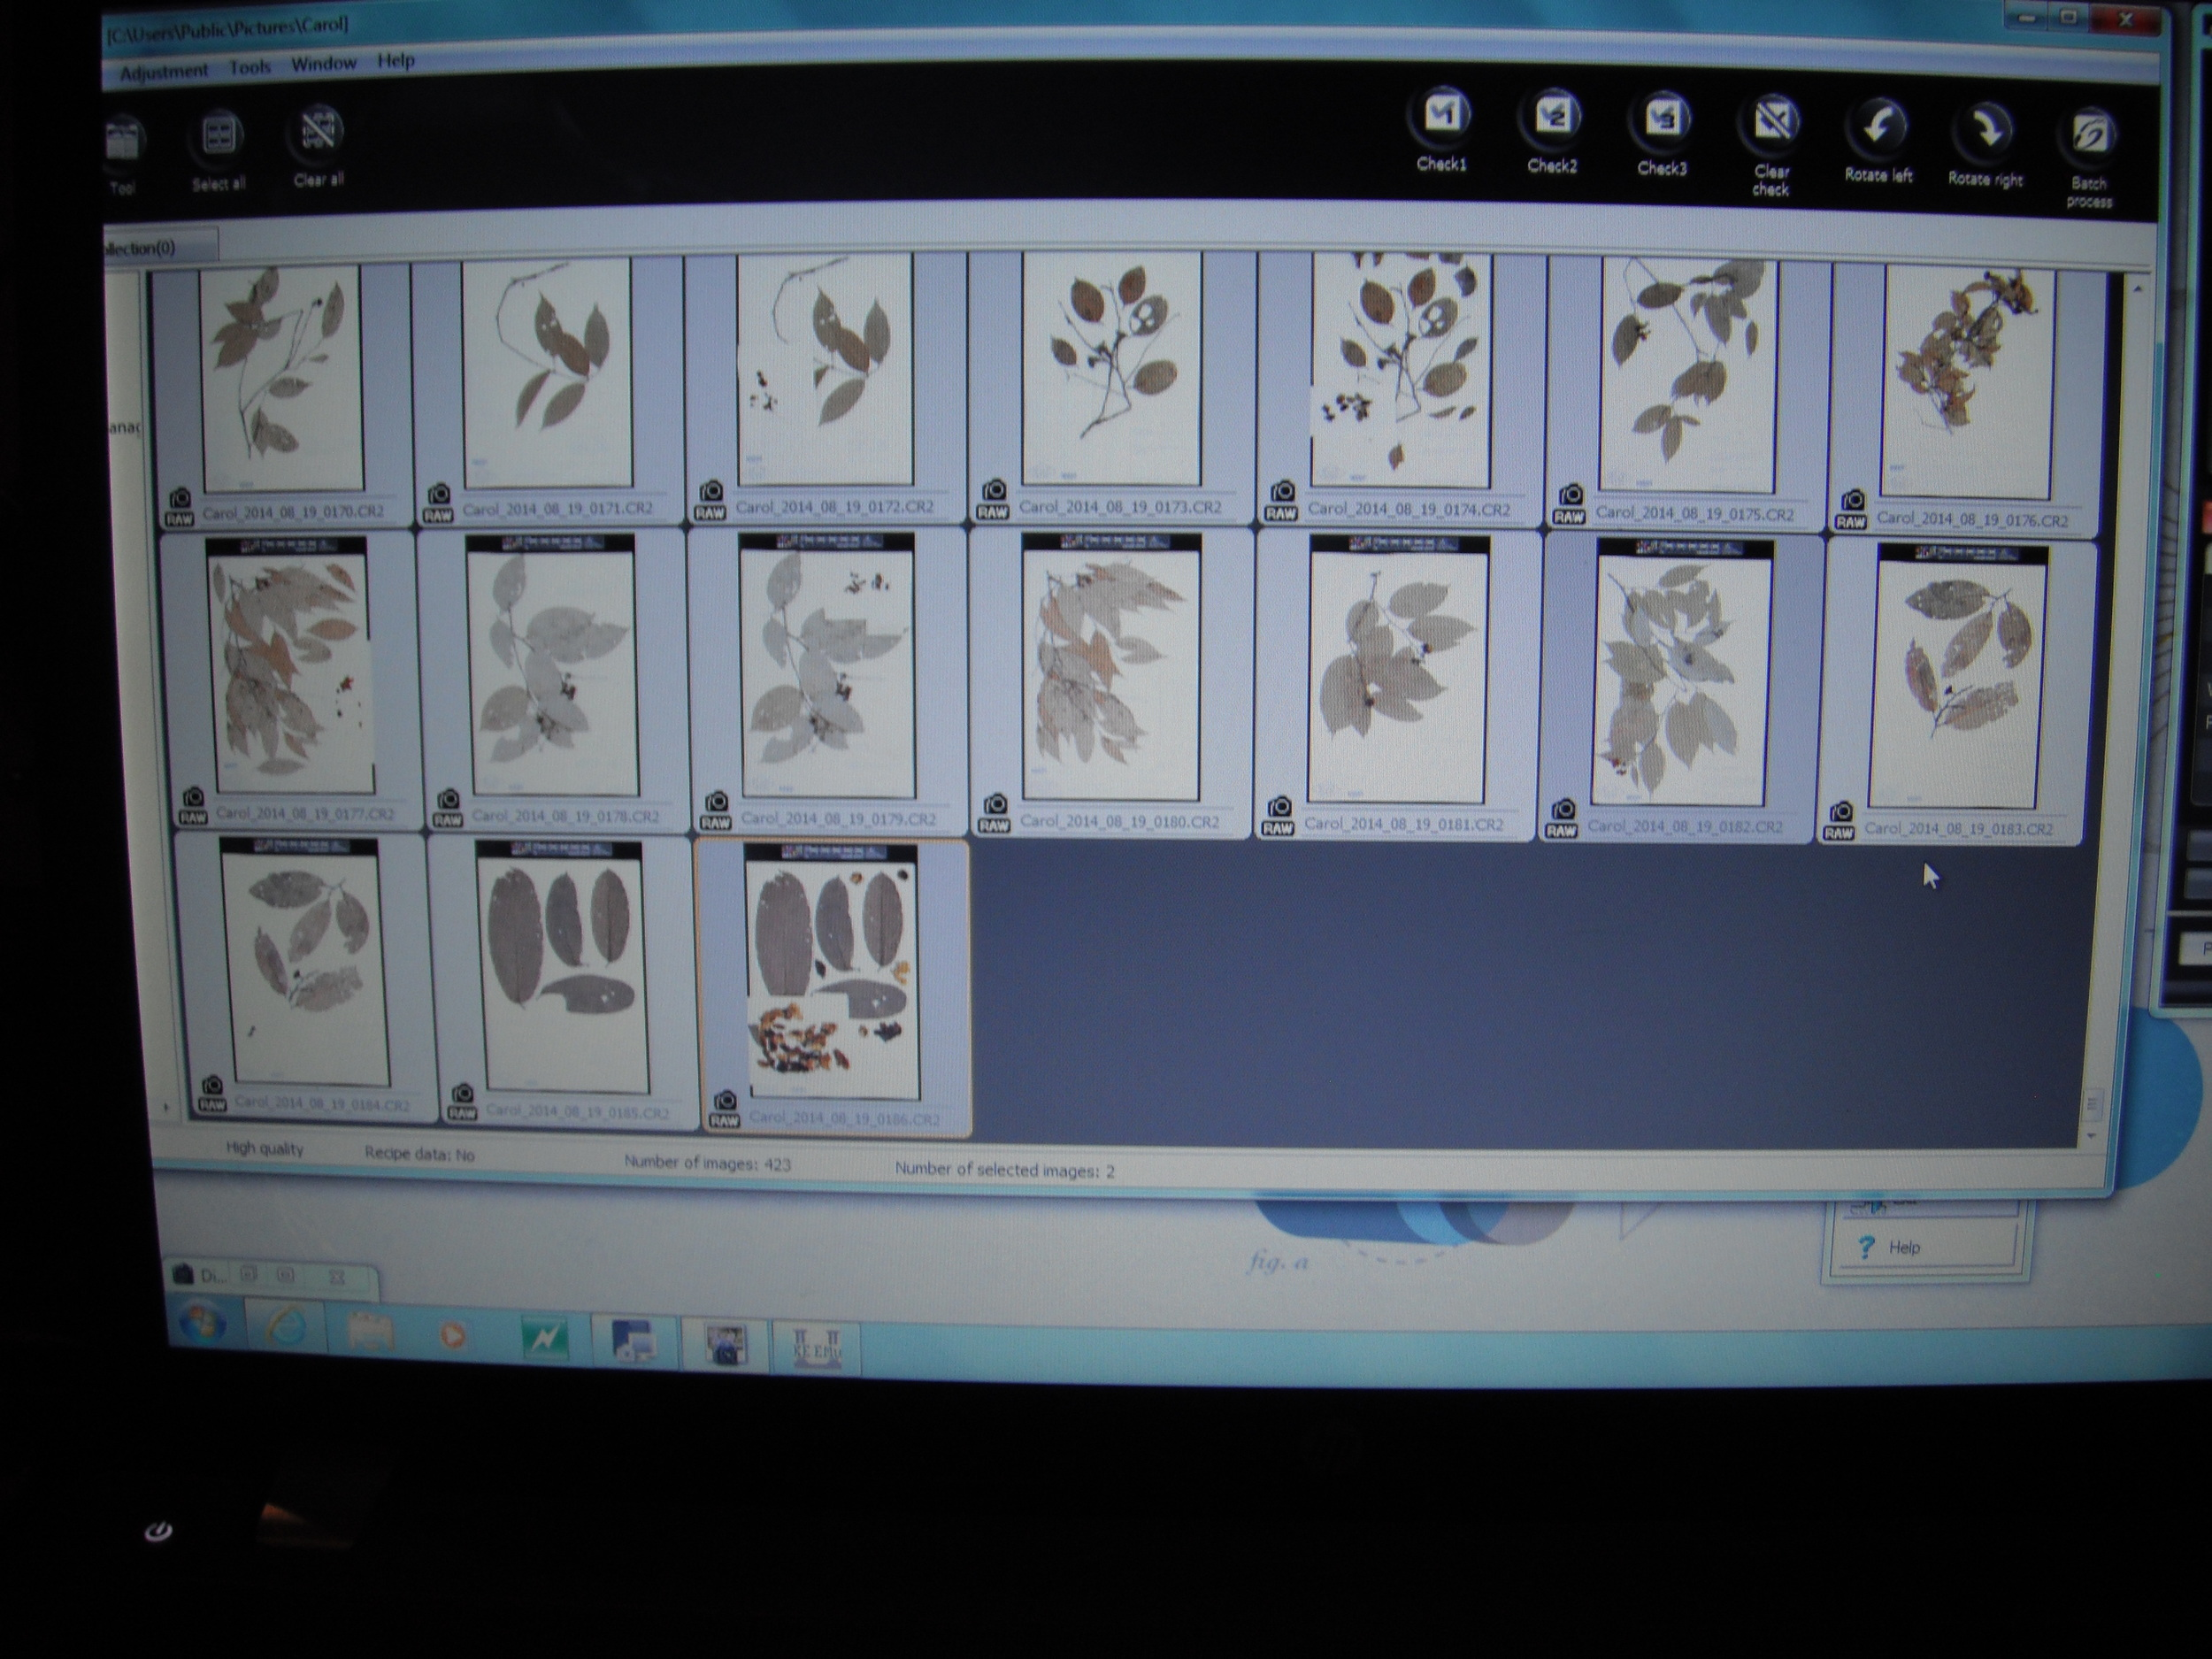 Photos of specimens to be added to database